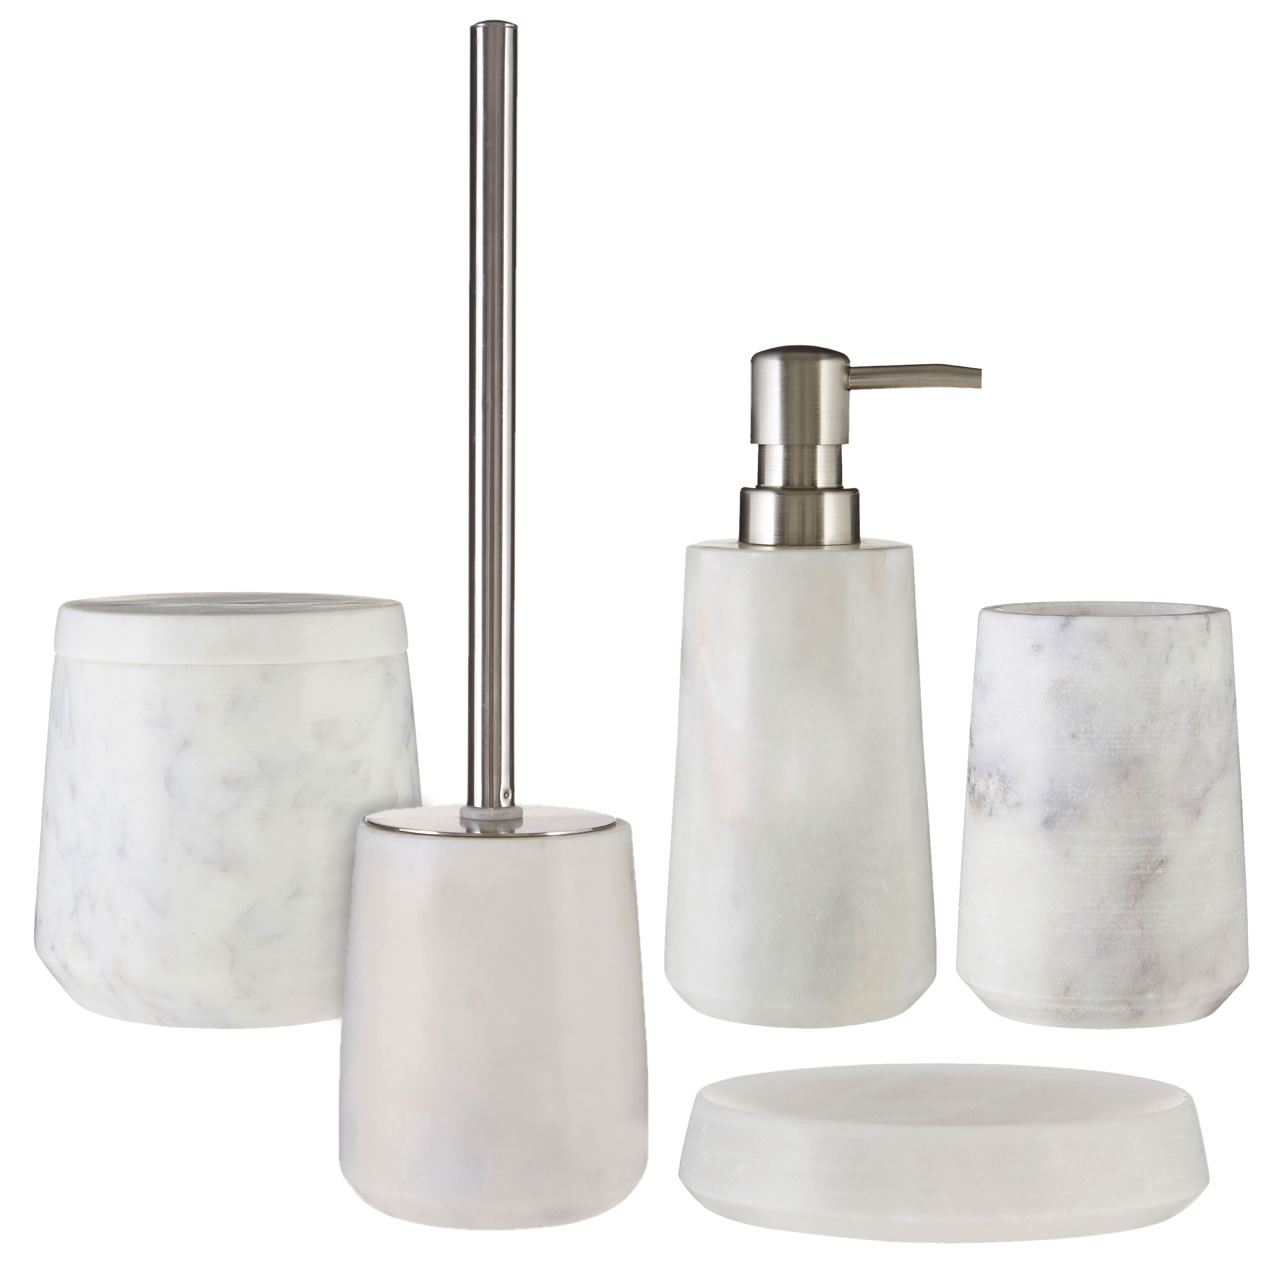 Merveilleux 5 Piece Marble Bathroom Accessories Set Soap Dish